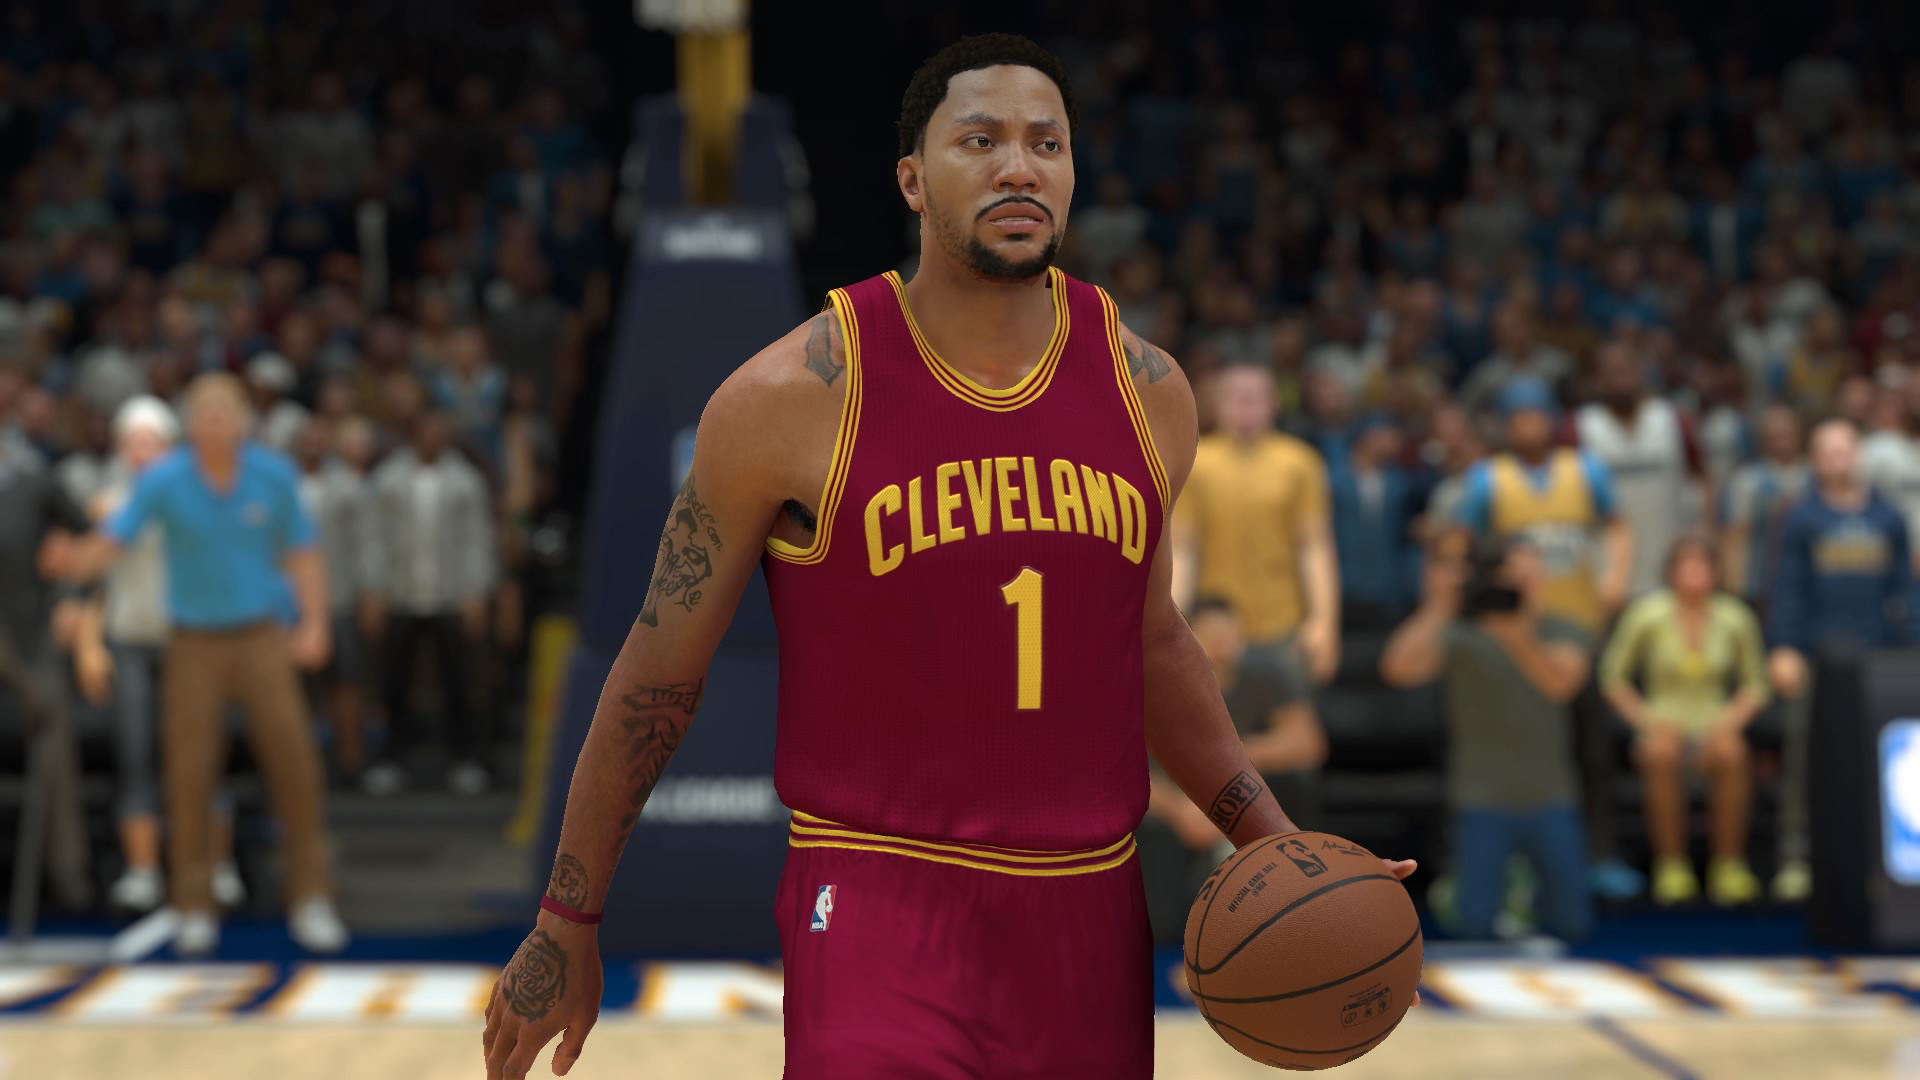 Nba 2k15 Latest Roster Ps4   Basketball Scores